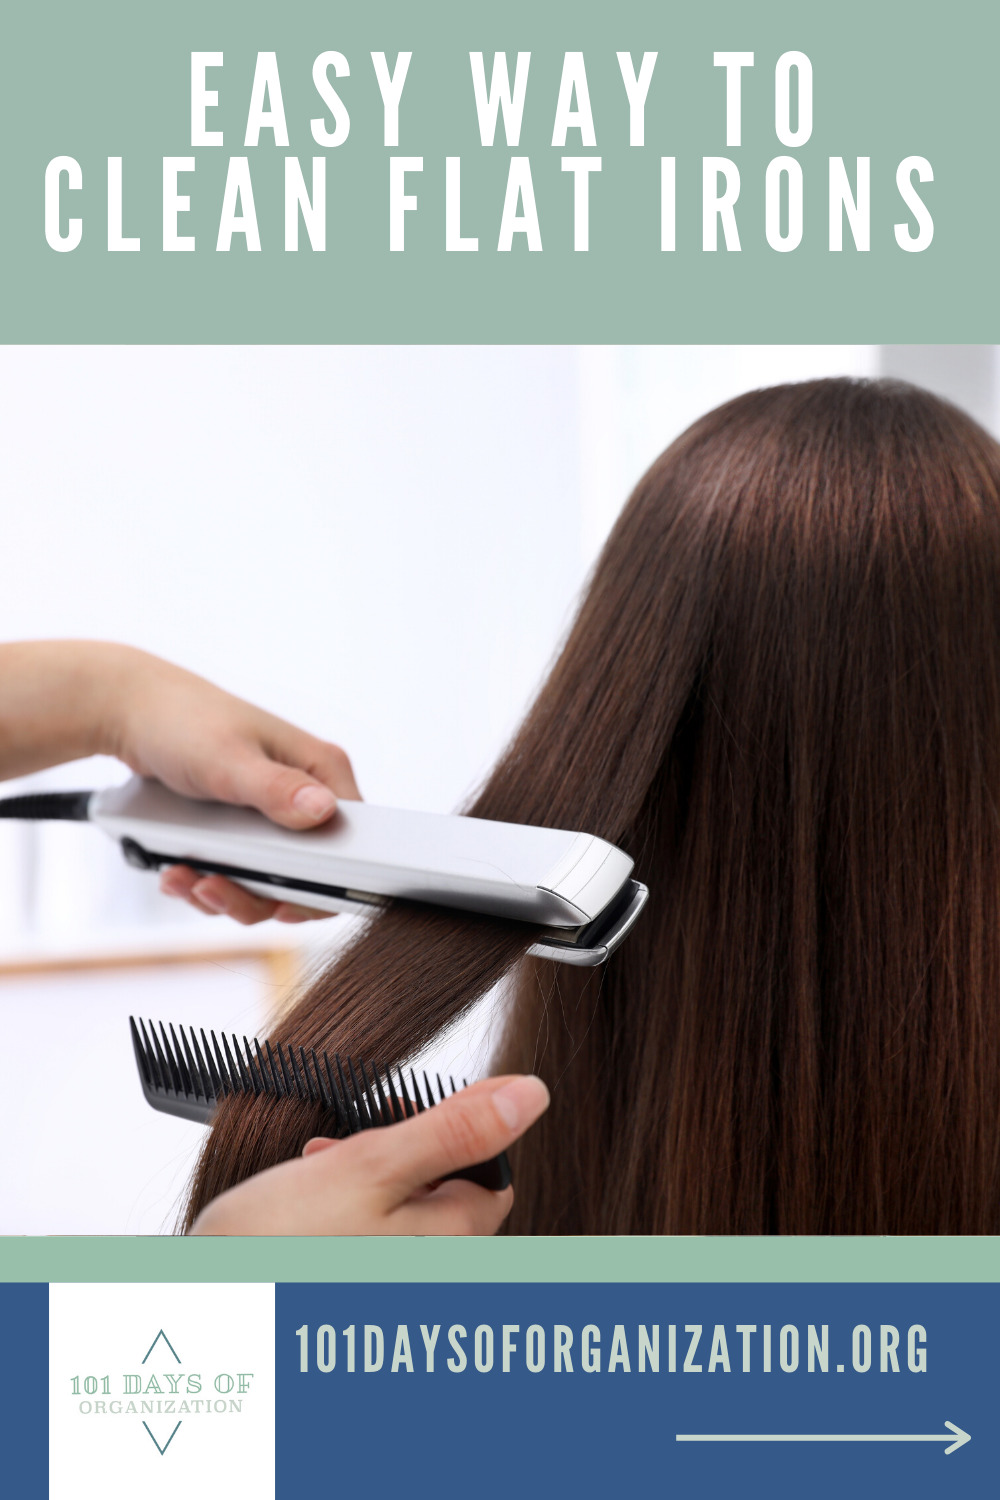 I like cleaning tips that are easy and make sense of my time. That's what this post is about. The easy way to clean flat irons. Since my hair is long and really curly, I use my flat iron often. But, after a while, it looks gross and dirty. I don't want to put that on my hair. You shouldn't either. Read my post and learn how easy it is to clean flat irons so they look new again. #flatirons #howtocleanflatirons #cleeaningtricks #101daysoforganizationblog